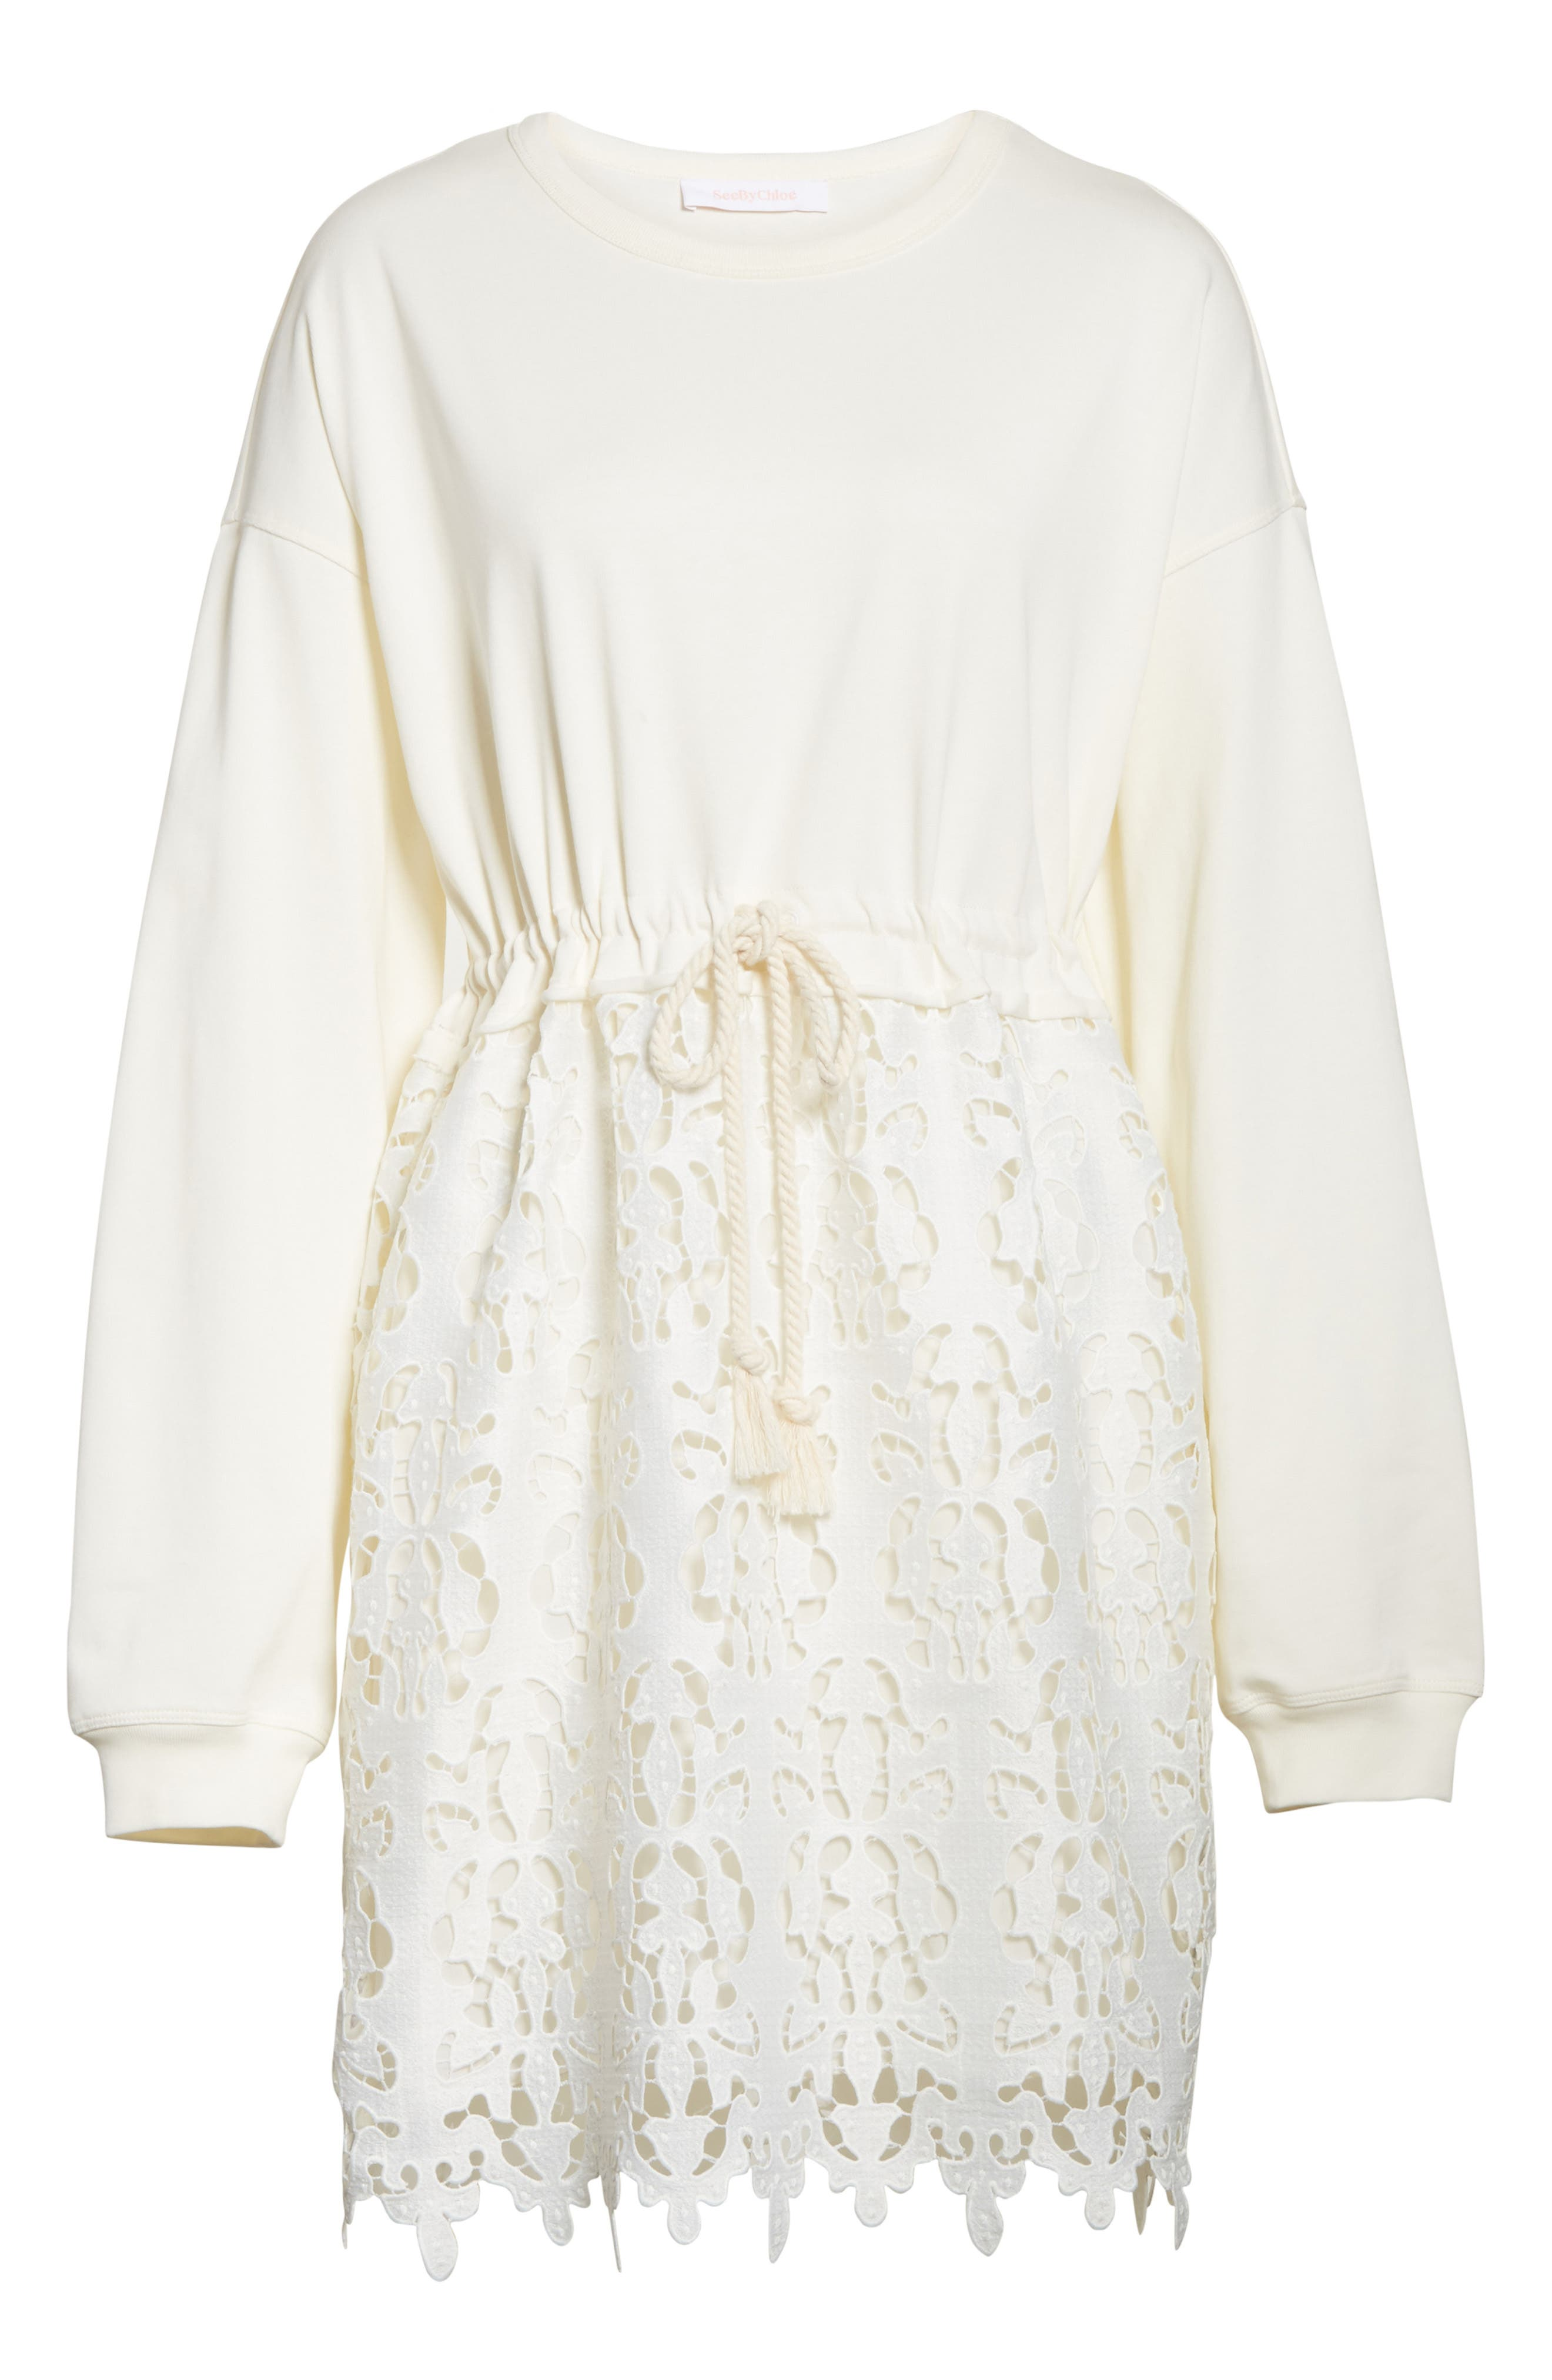 SEE BY CHLOÉ,                             Lace Skirt Sweatshirt Dress,                             Alternate thumbnail 6, color,                             101